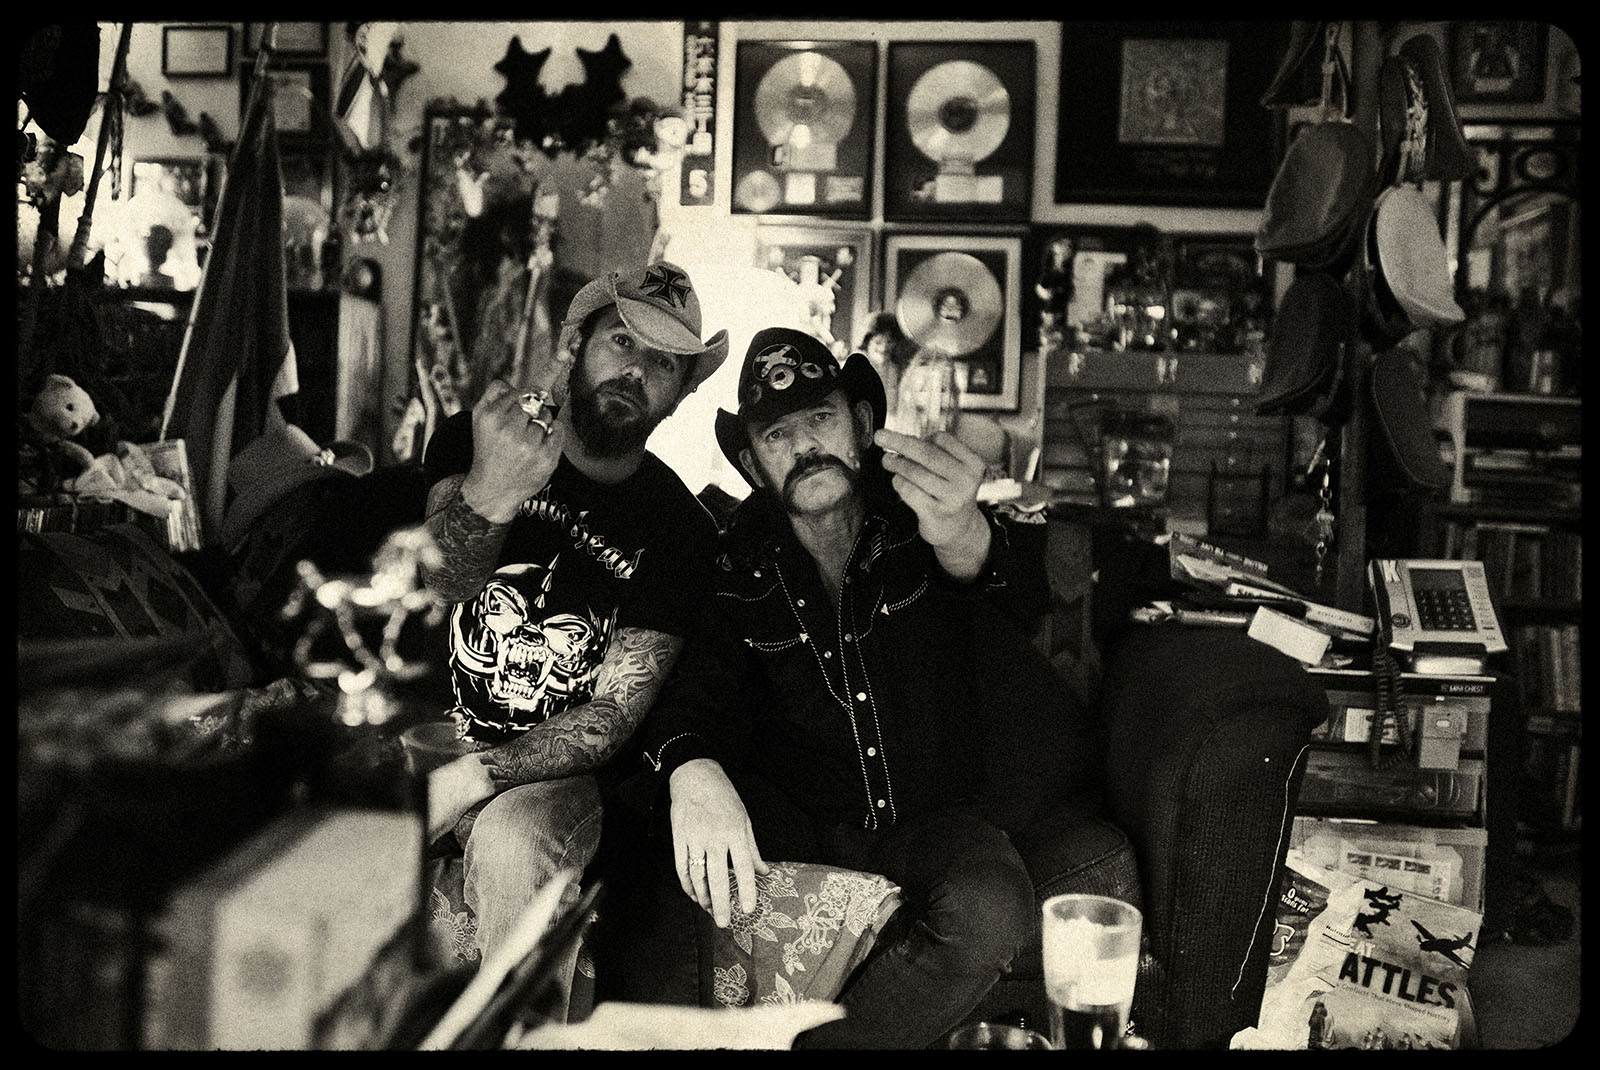 Motörhead Los Angeles, California. March 2010. Pep Bonet and Lemmy Kilmister at his home in Los Angeles watching documentaries of the second World War on his couch. Motörhead, originally called Bastard, is a long-lived and iconic heavy metal band from England formed in 1975. They are widely recognized as progenitors of thrash metal, a fusion of heavy metal and what was soon to become hardcore punk. Consequently they influenced countless rock, punk rock, and heavy metal bands that followed. The actual band members are: Lemmy Kilmister- Bass and vocals, Phil Campbell- Lead guitar and Backup vocals and Mikkey Dee at the Drums.